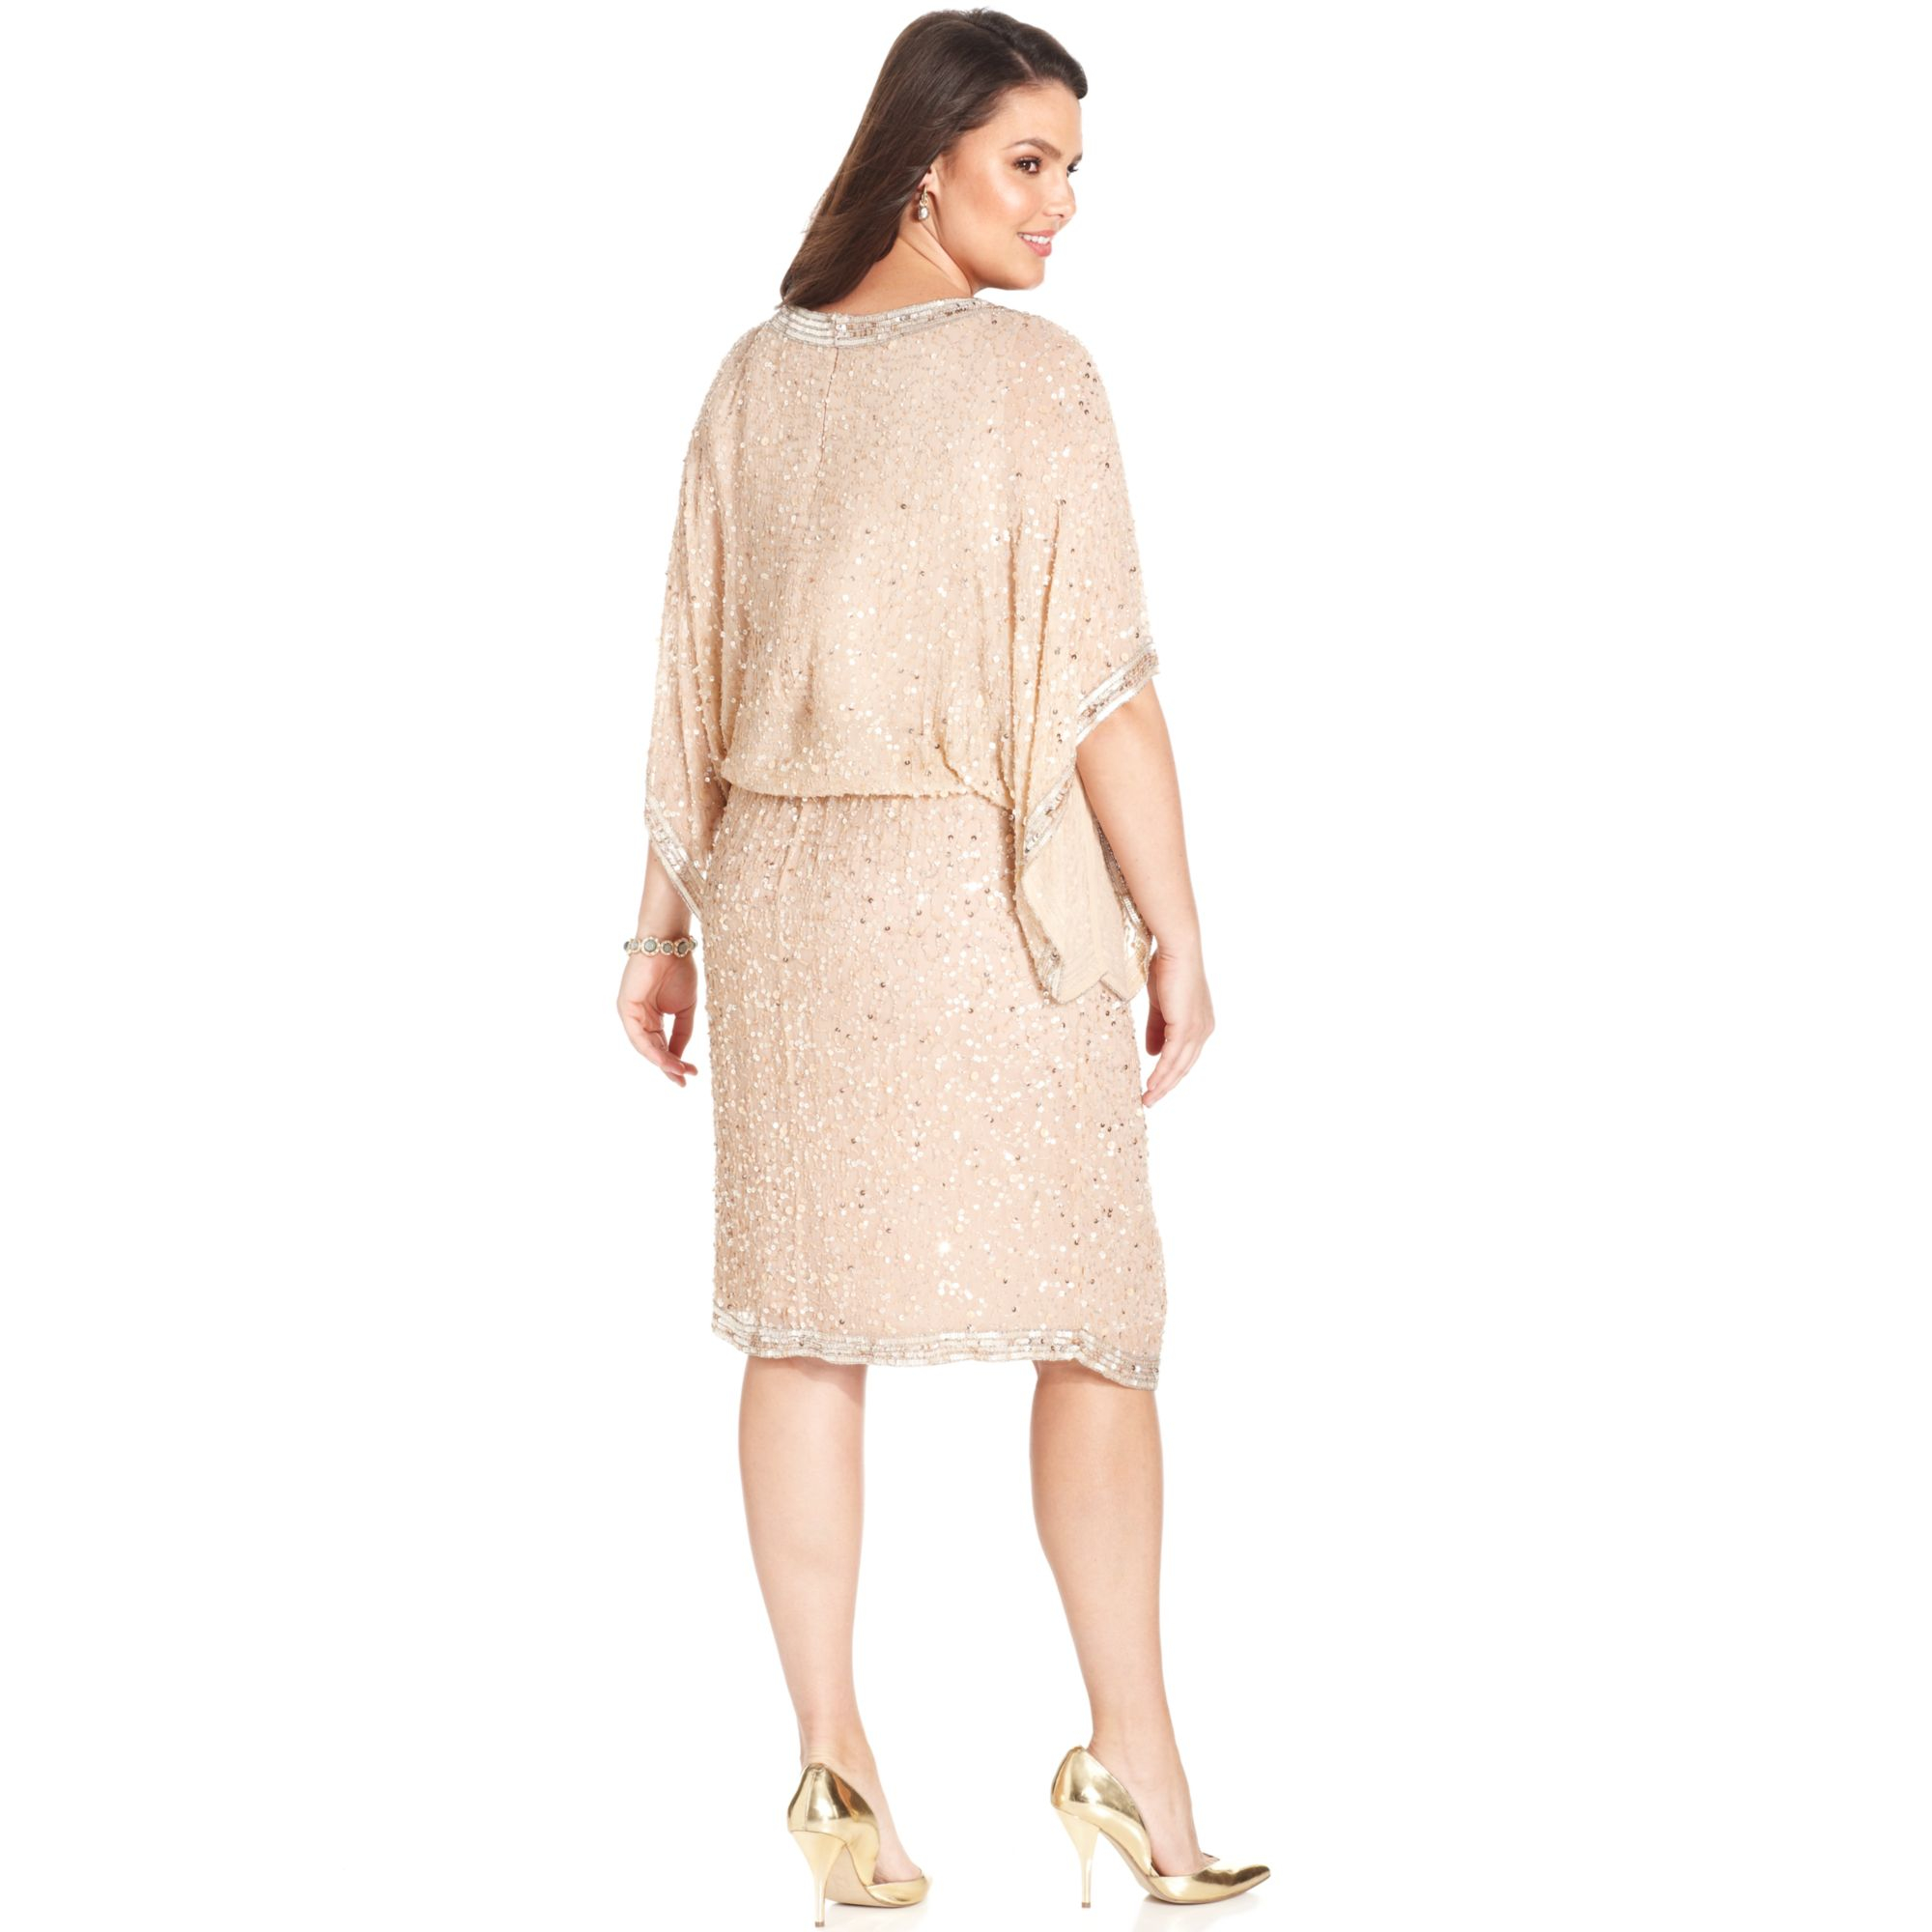 a39c835ca5e Lyst - Patra Plus Size Kimonosleeve Beaded Dress in Pink